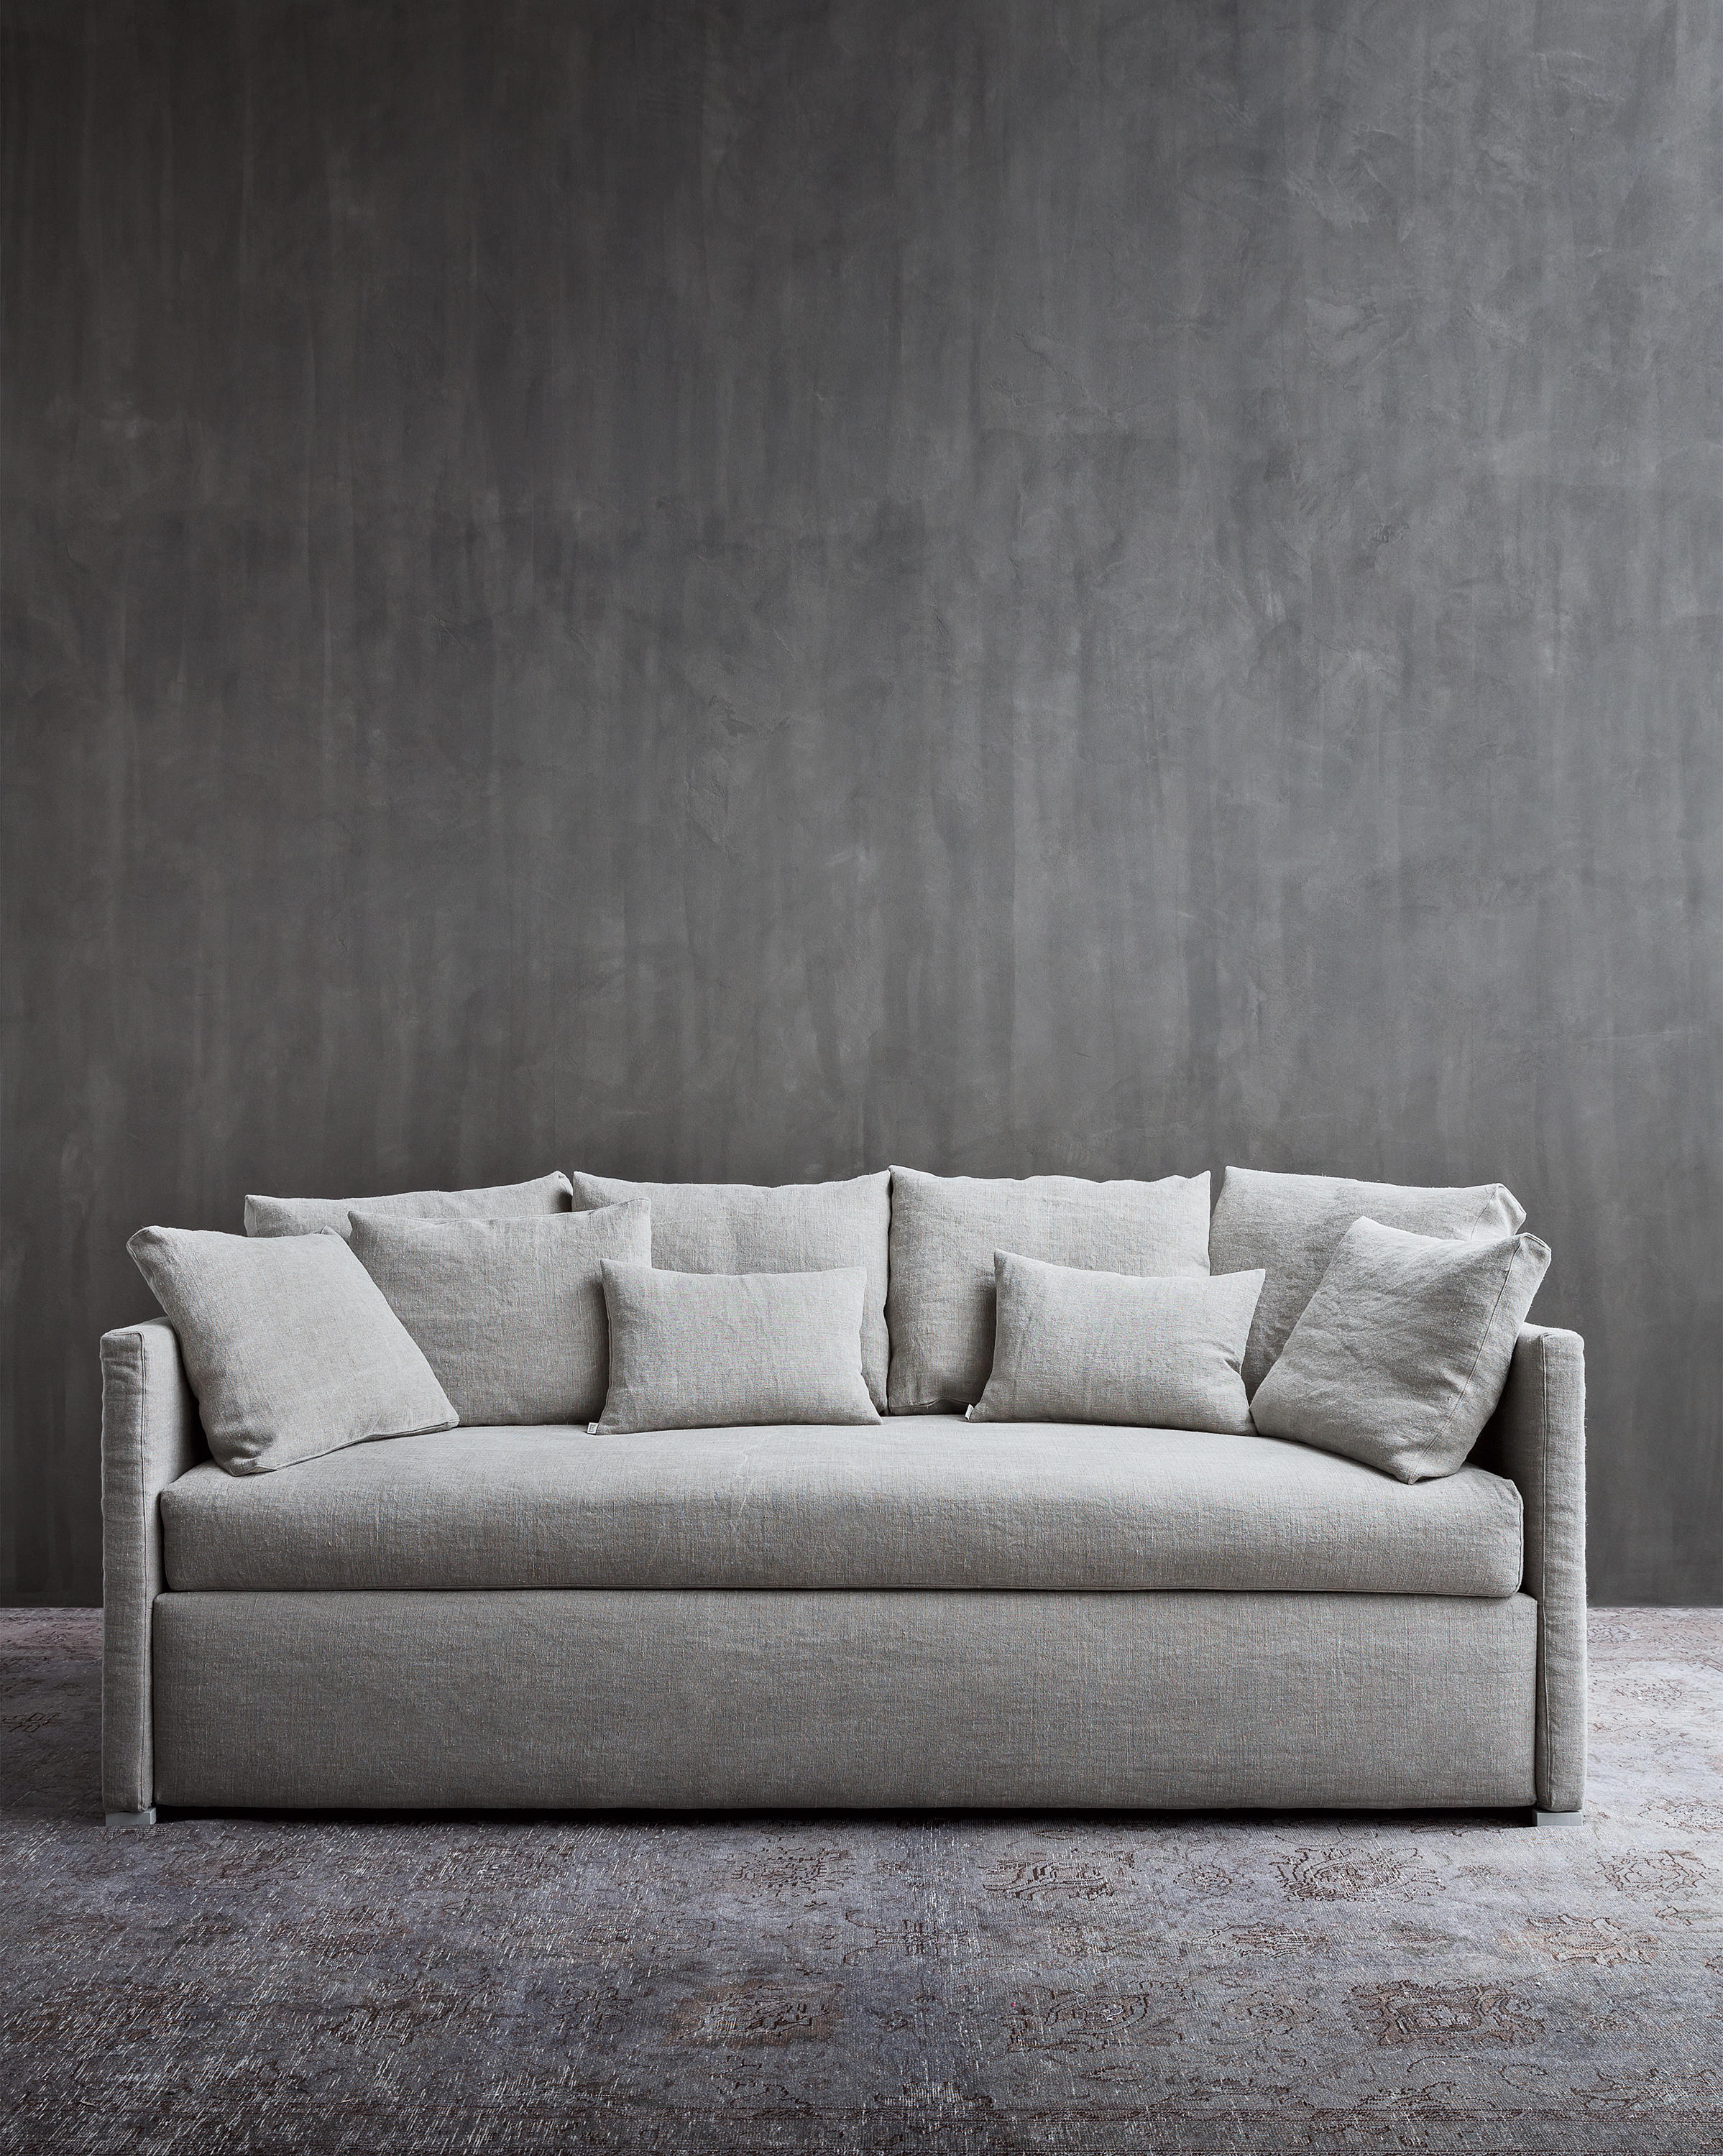 biss sofa bed sofas from flou architonic rh architonic com flou sleeper sofa flou book sofa bed